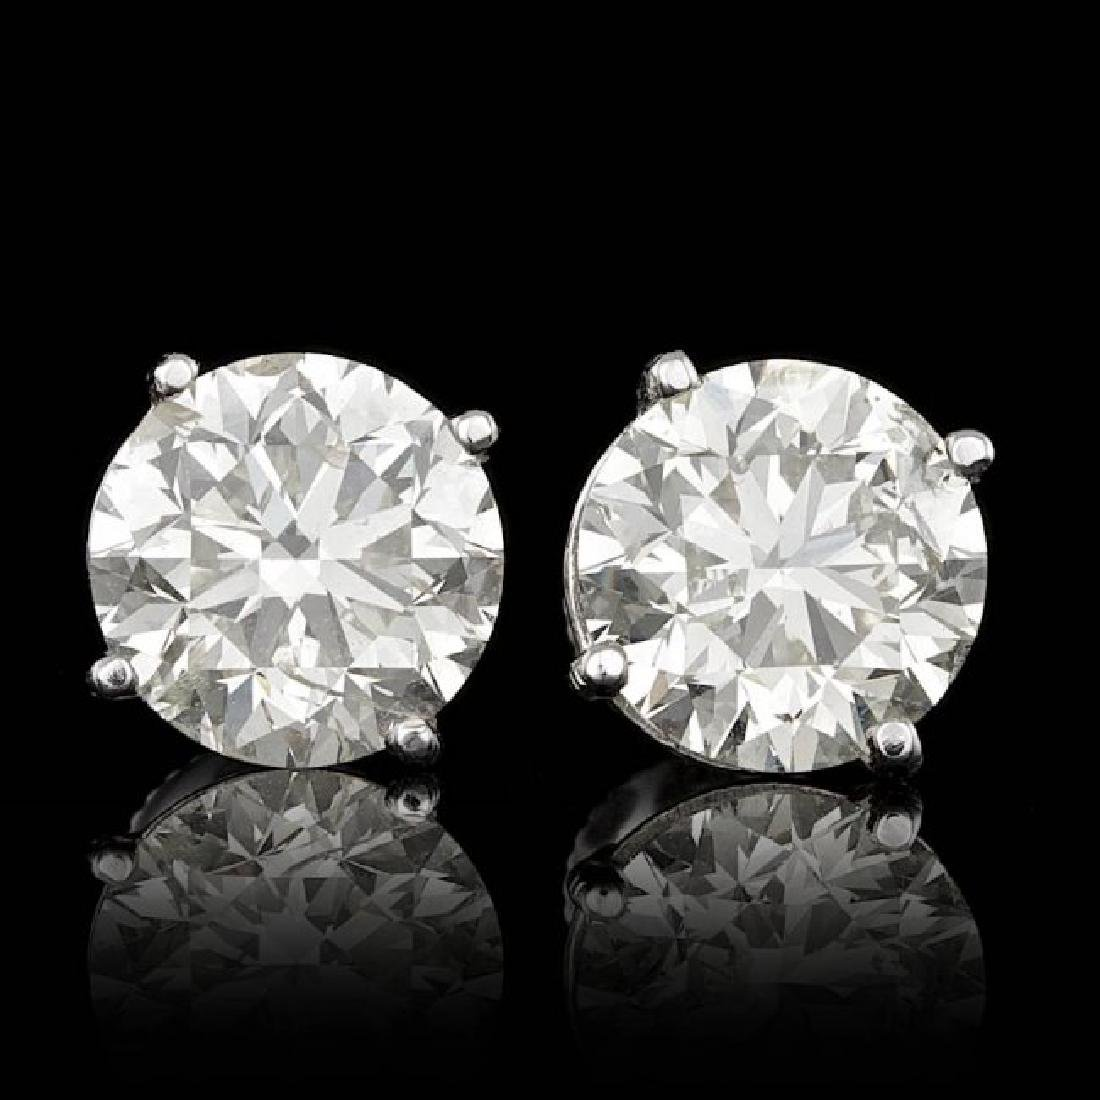 14k White Gold 5.09ct Diamond Earrings